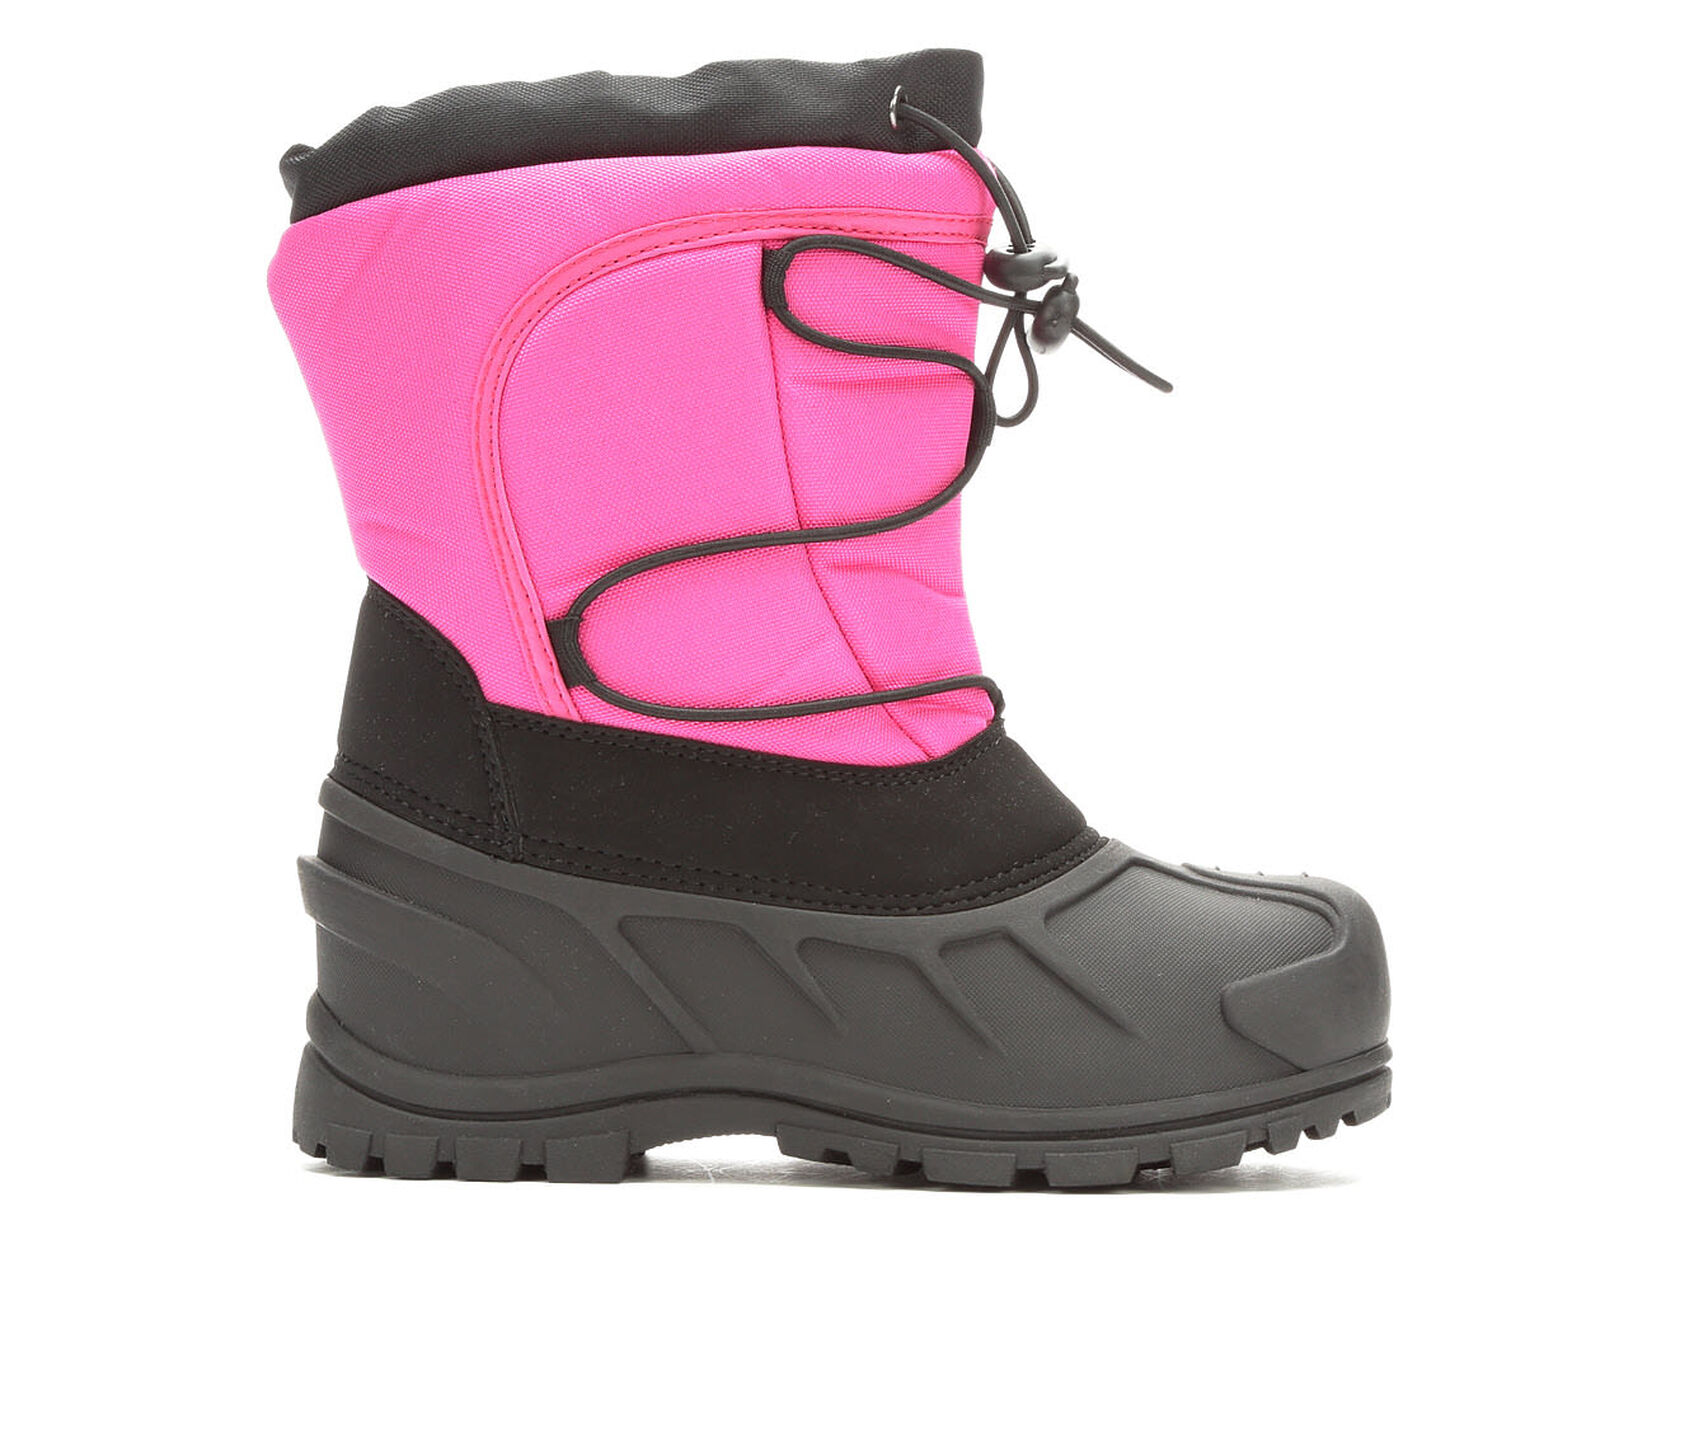 05b38bd7e Girls' Itasca Sonoma Little Kid & Big Kid Cerebus Solid Winter Boots